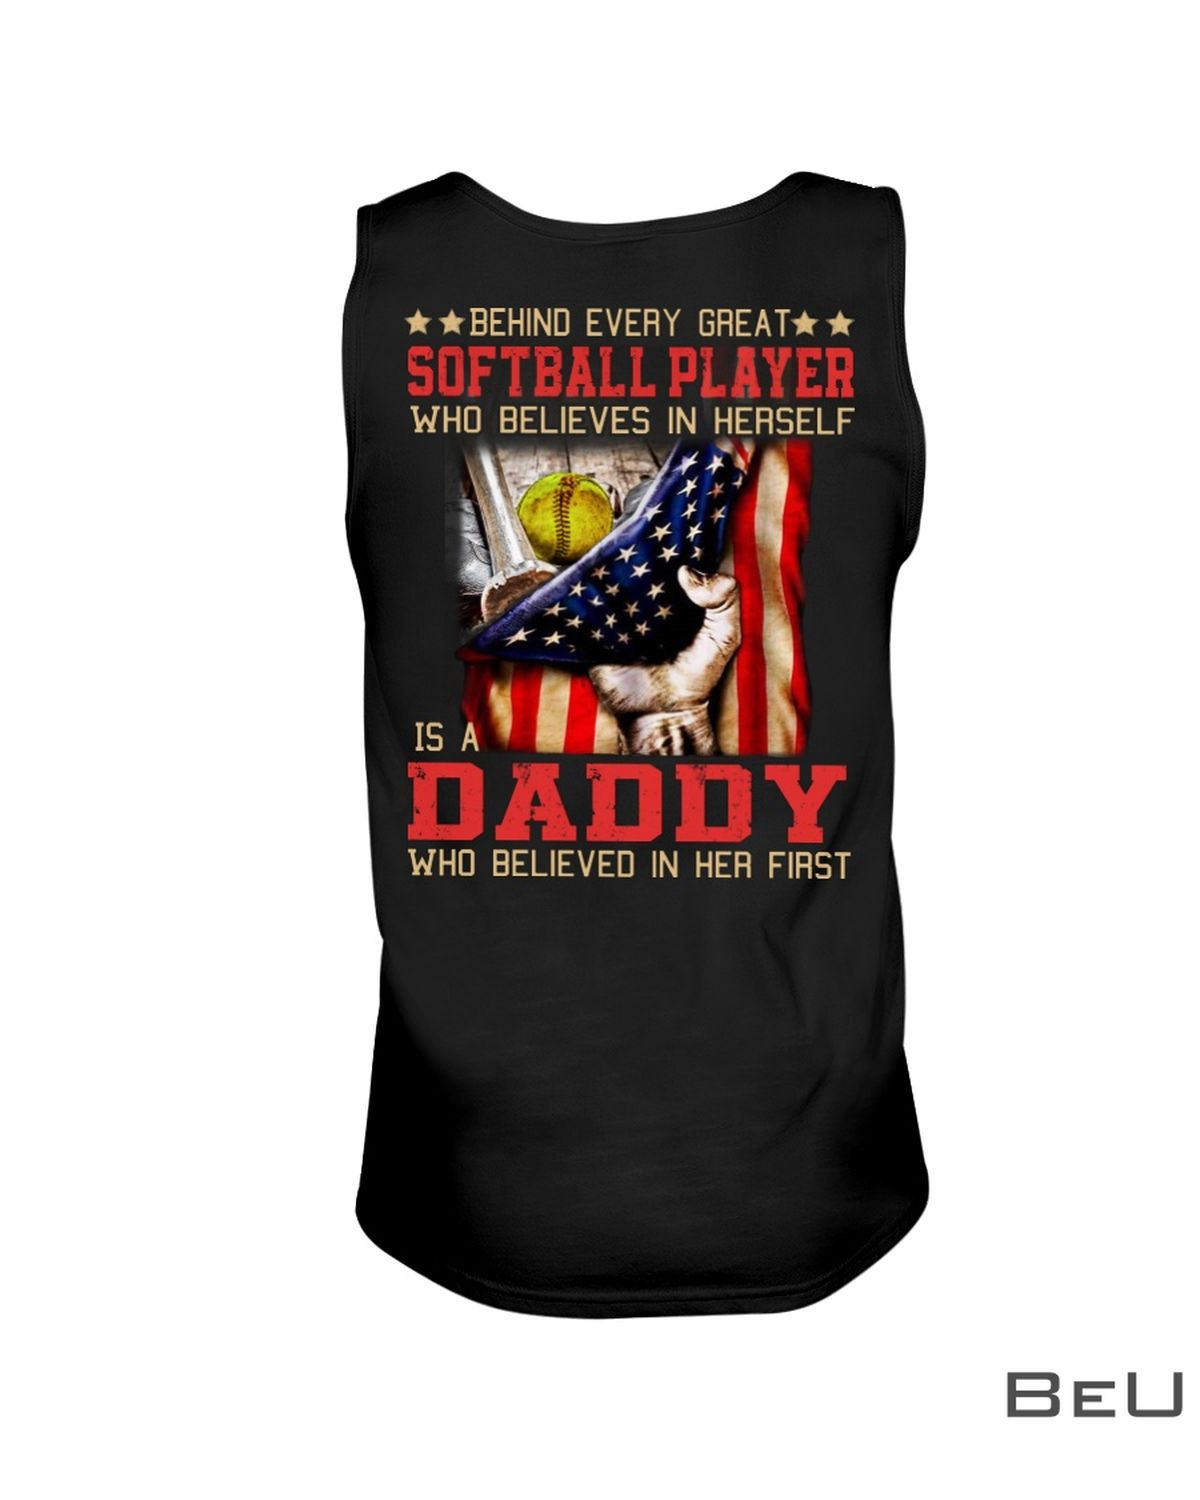 Behind Every Great Softball Player Who Believes In Herself Is A Daddy Shirt x